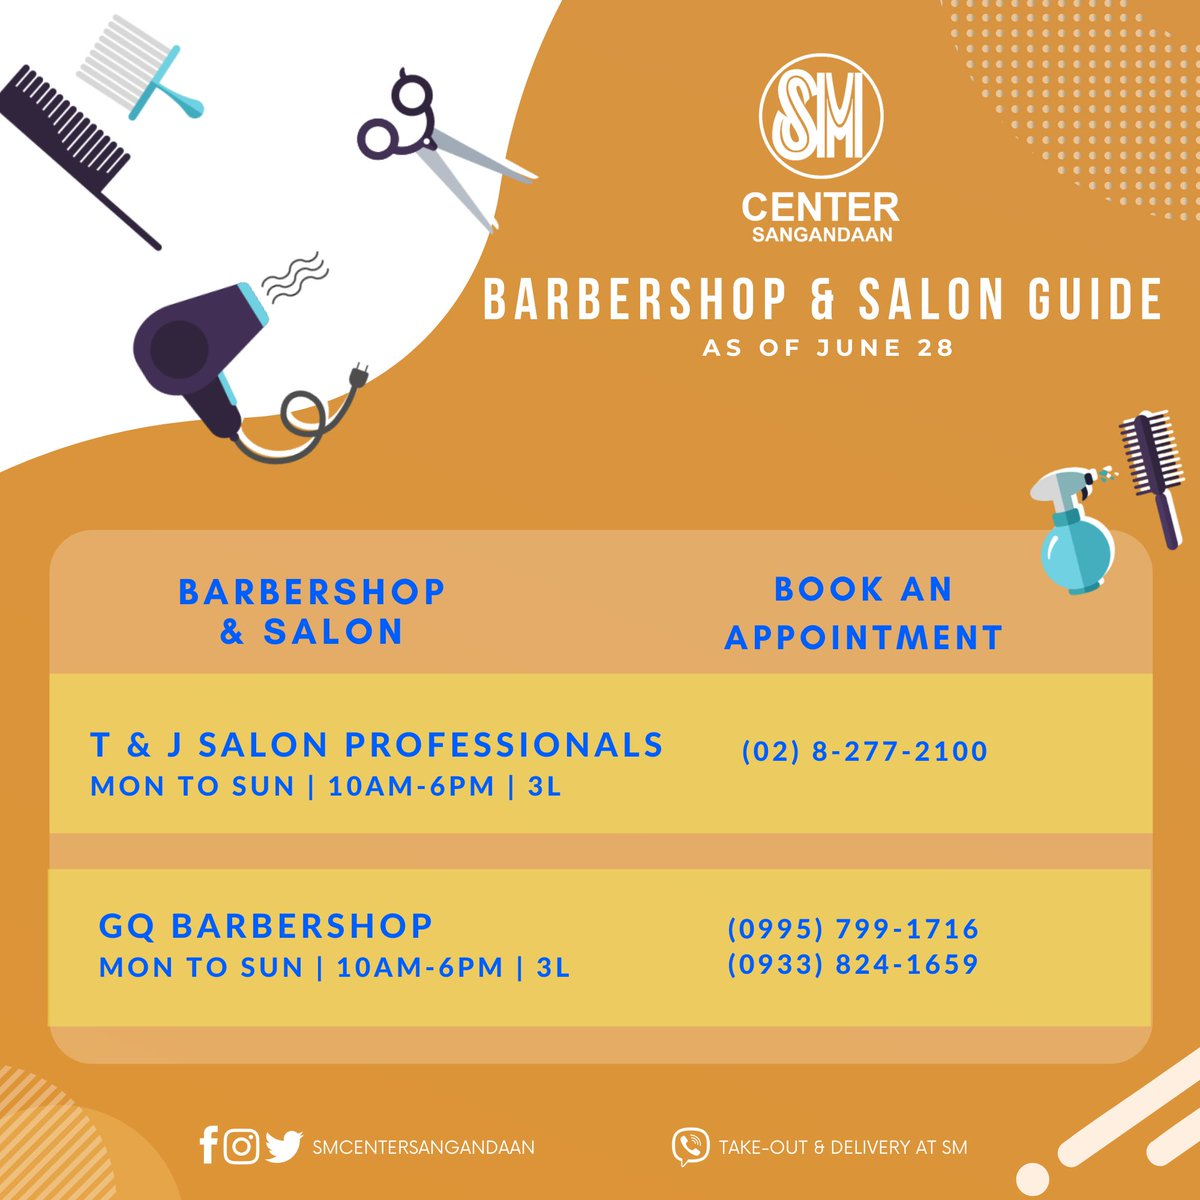 Look good and feel good! Message and/or call our barbershop and salons for your booking appointment.  GQ BARBERSHOP 📱 (0995) 799-1716 or (0933) 824-1659  T&J SALON PROFESSIONALS 📱 (02) 8-277-2100 https://t.co/Swp5rhXsNI